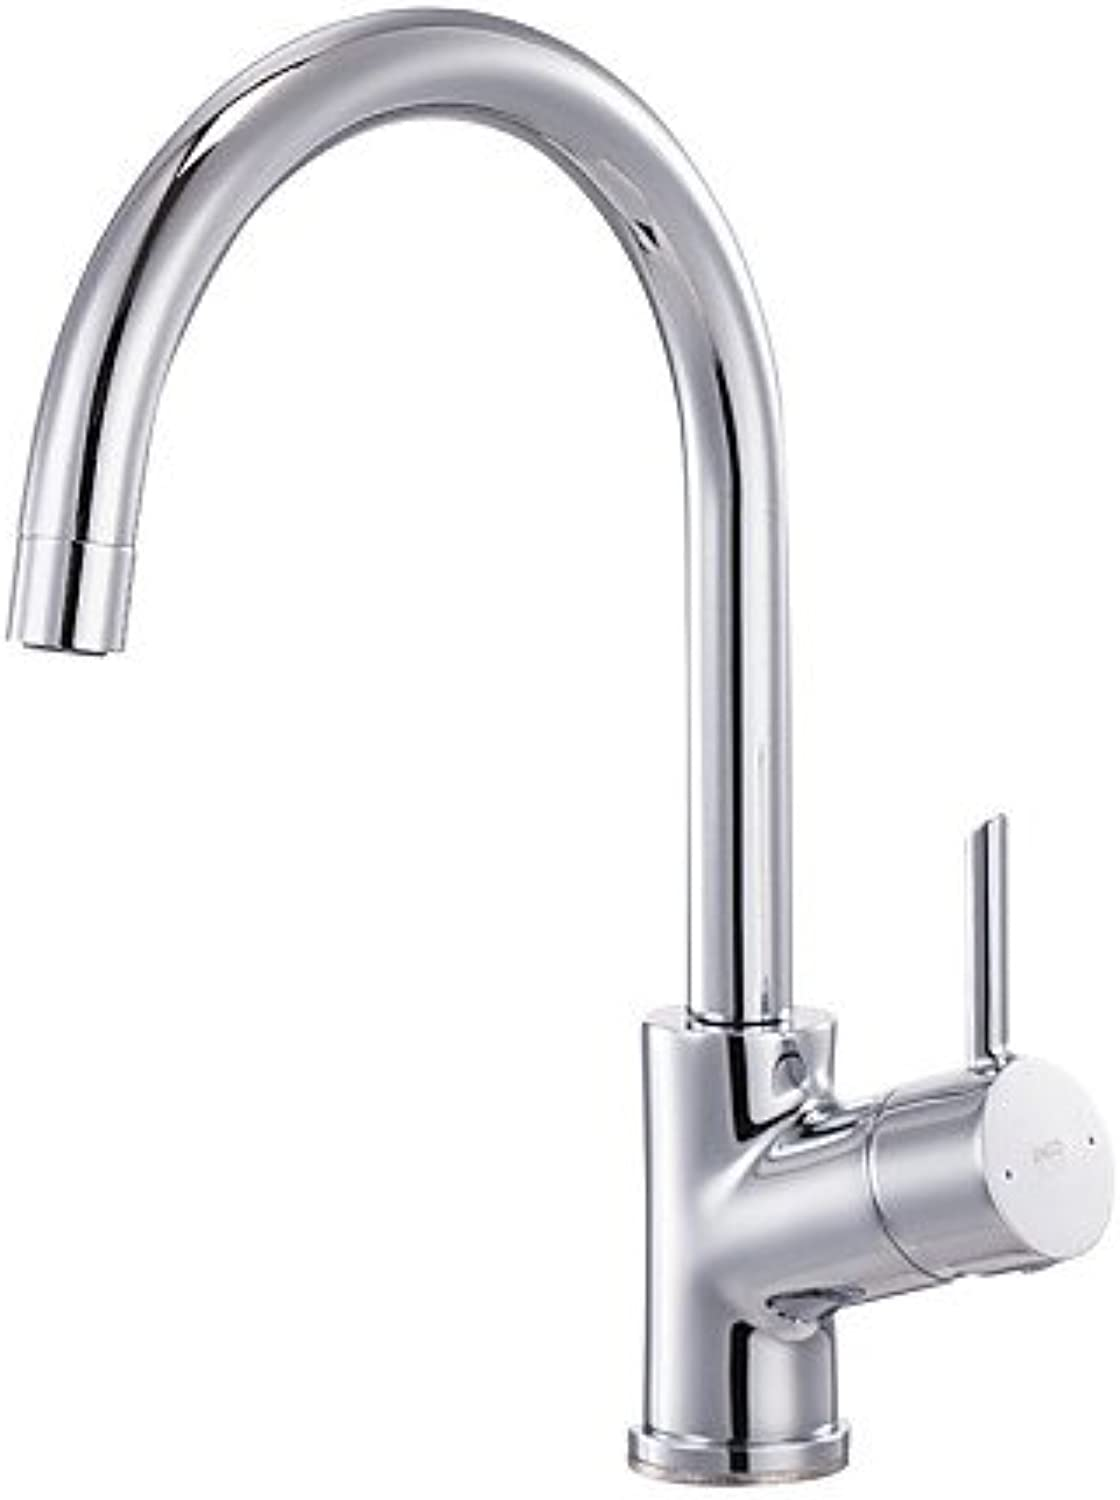 KHSKX ENZgoldDI Kitchen Sink Faucet Tap 360 redatable Lead Free Brass 1-Handle Polished Chrome ERF7129184CP